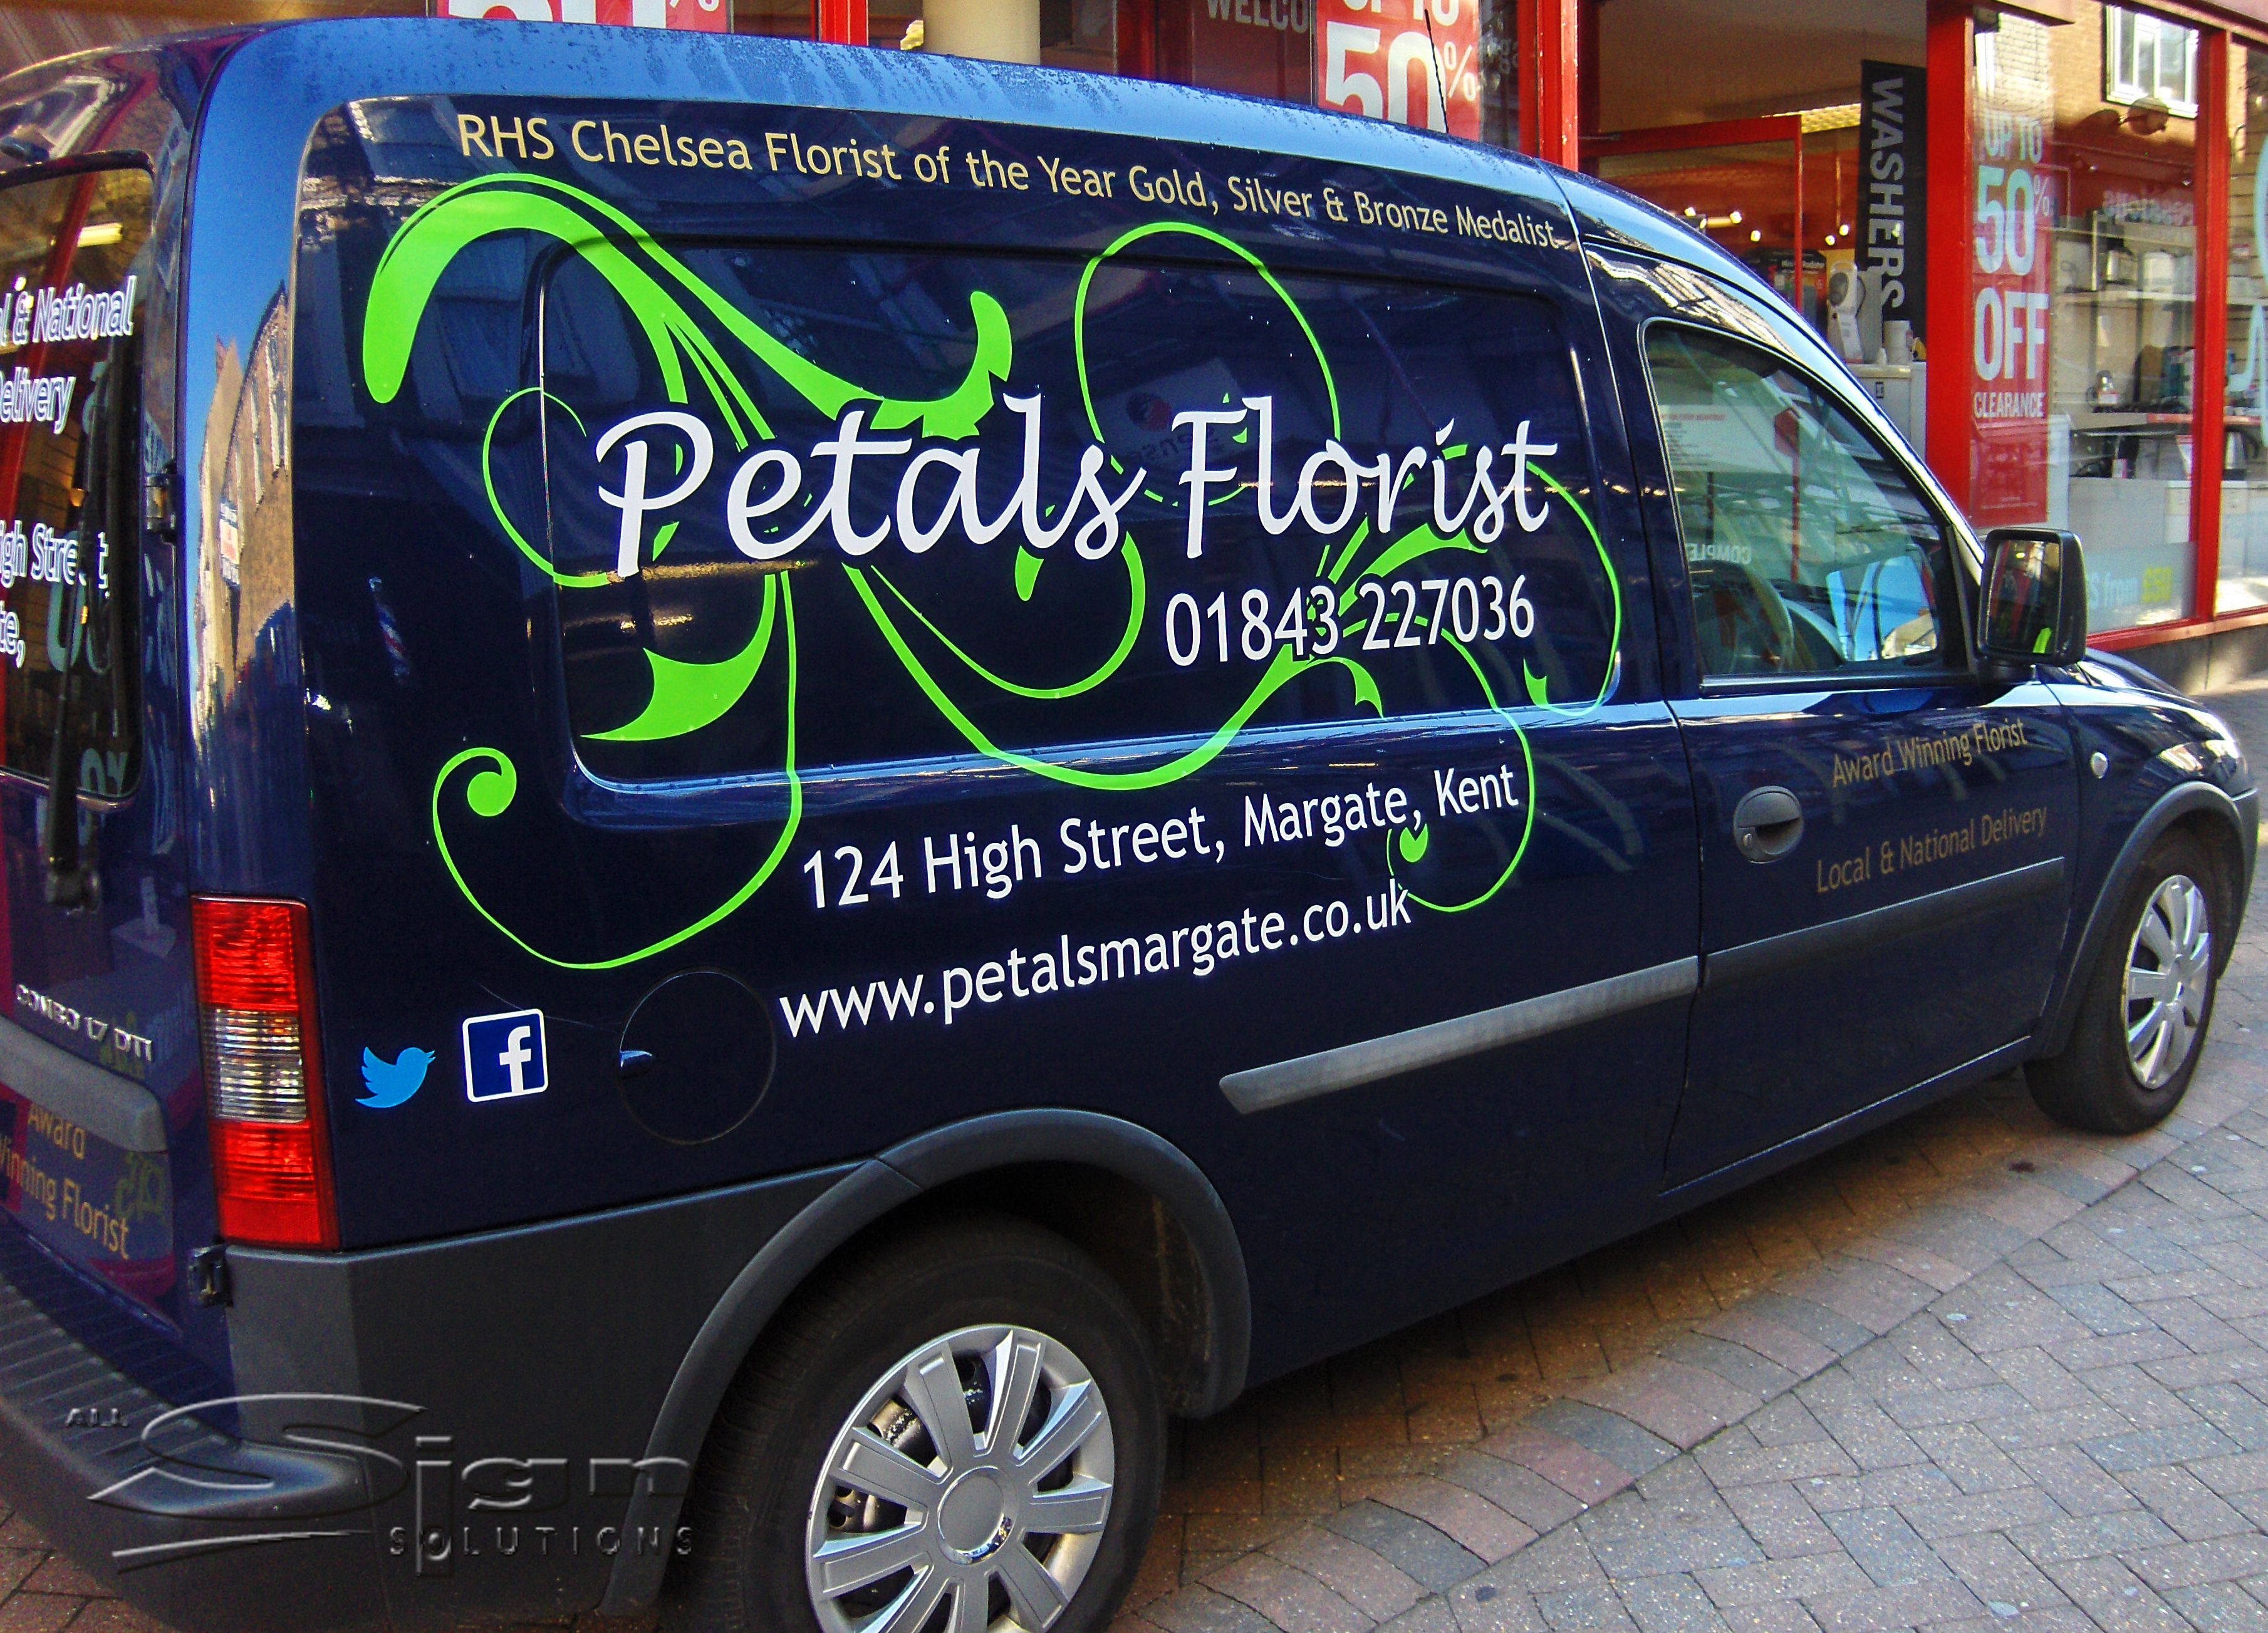 cbd8f8851c Petals Florist in Margate vehicle livery design uses a handwritten styled  font and the colours blue and white. The vivid green swirl stands out on the  dark ...